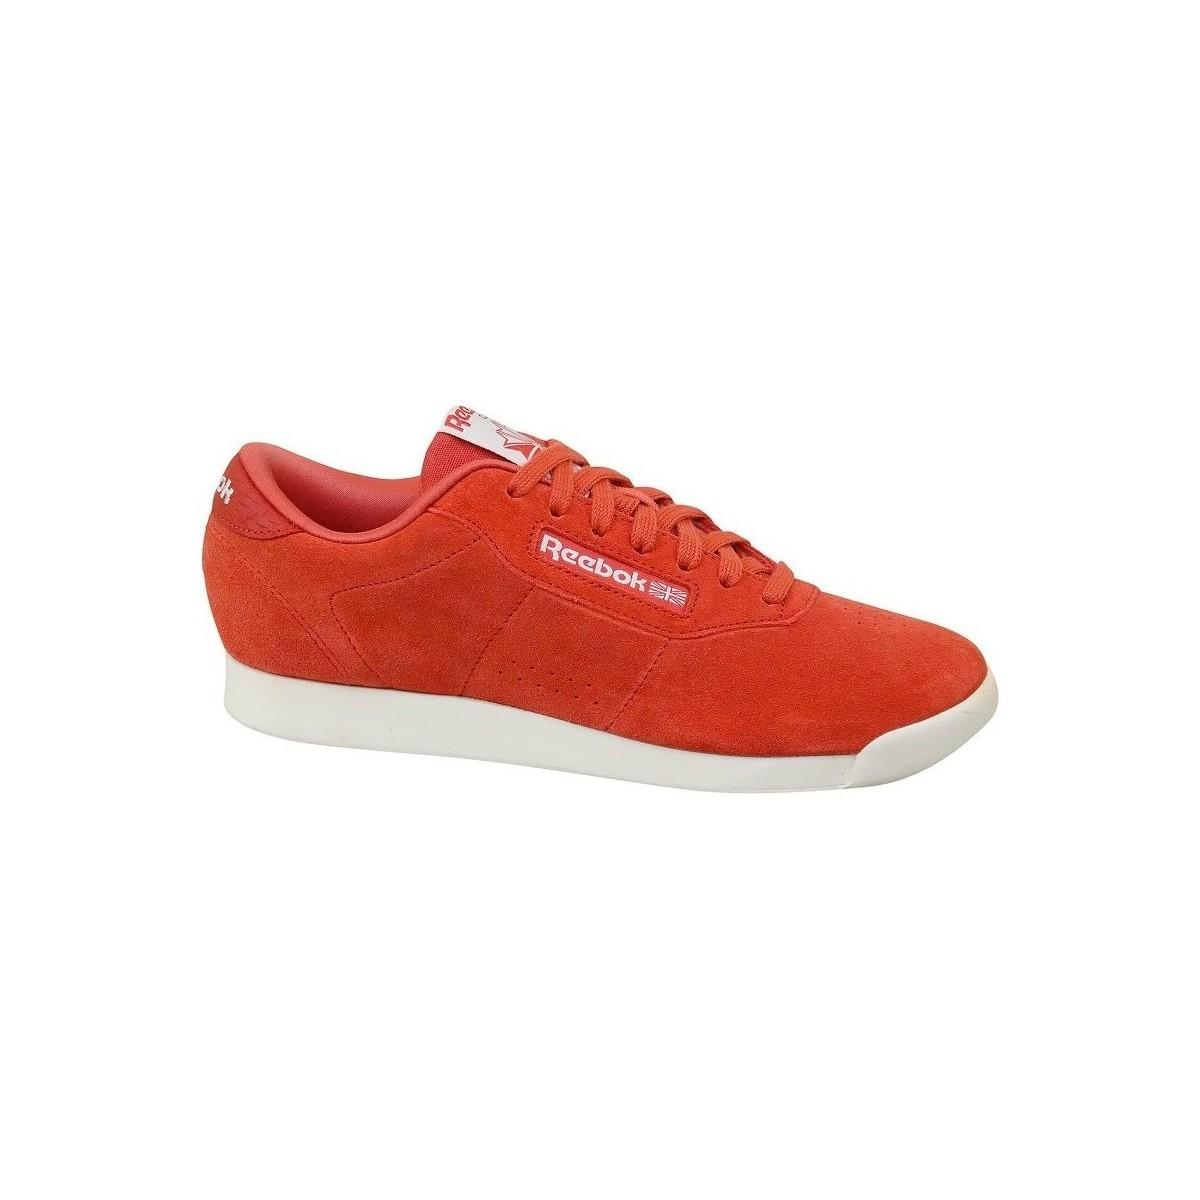 b794643b57374 Reebok - Princess Woven Emb Clay Women s Shoes (trainers) In Orange - Lyst.  View fullscreen